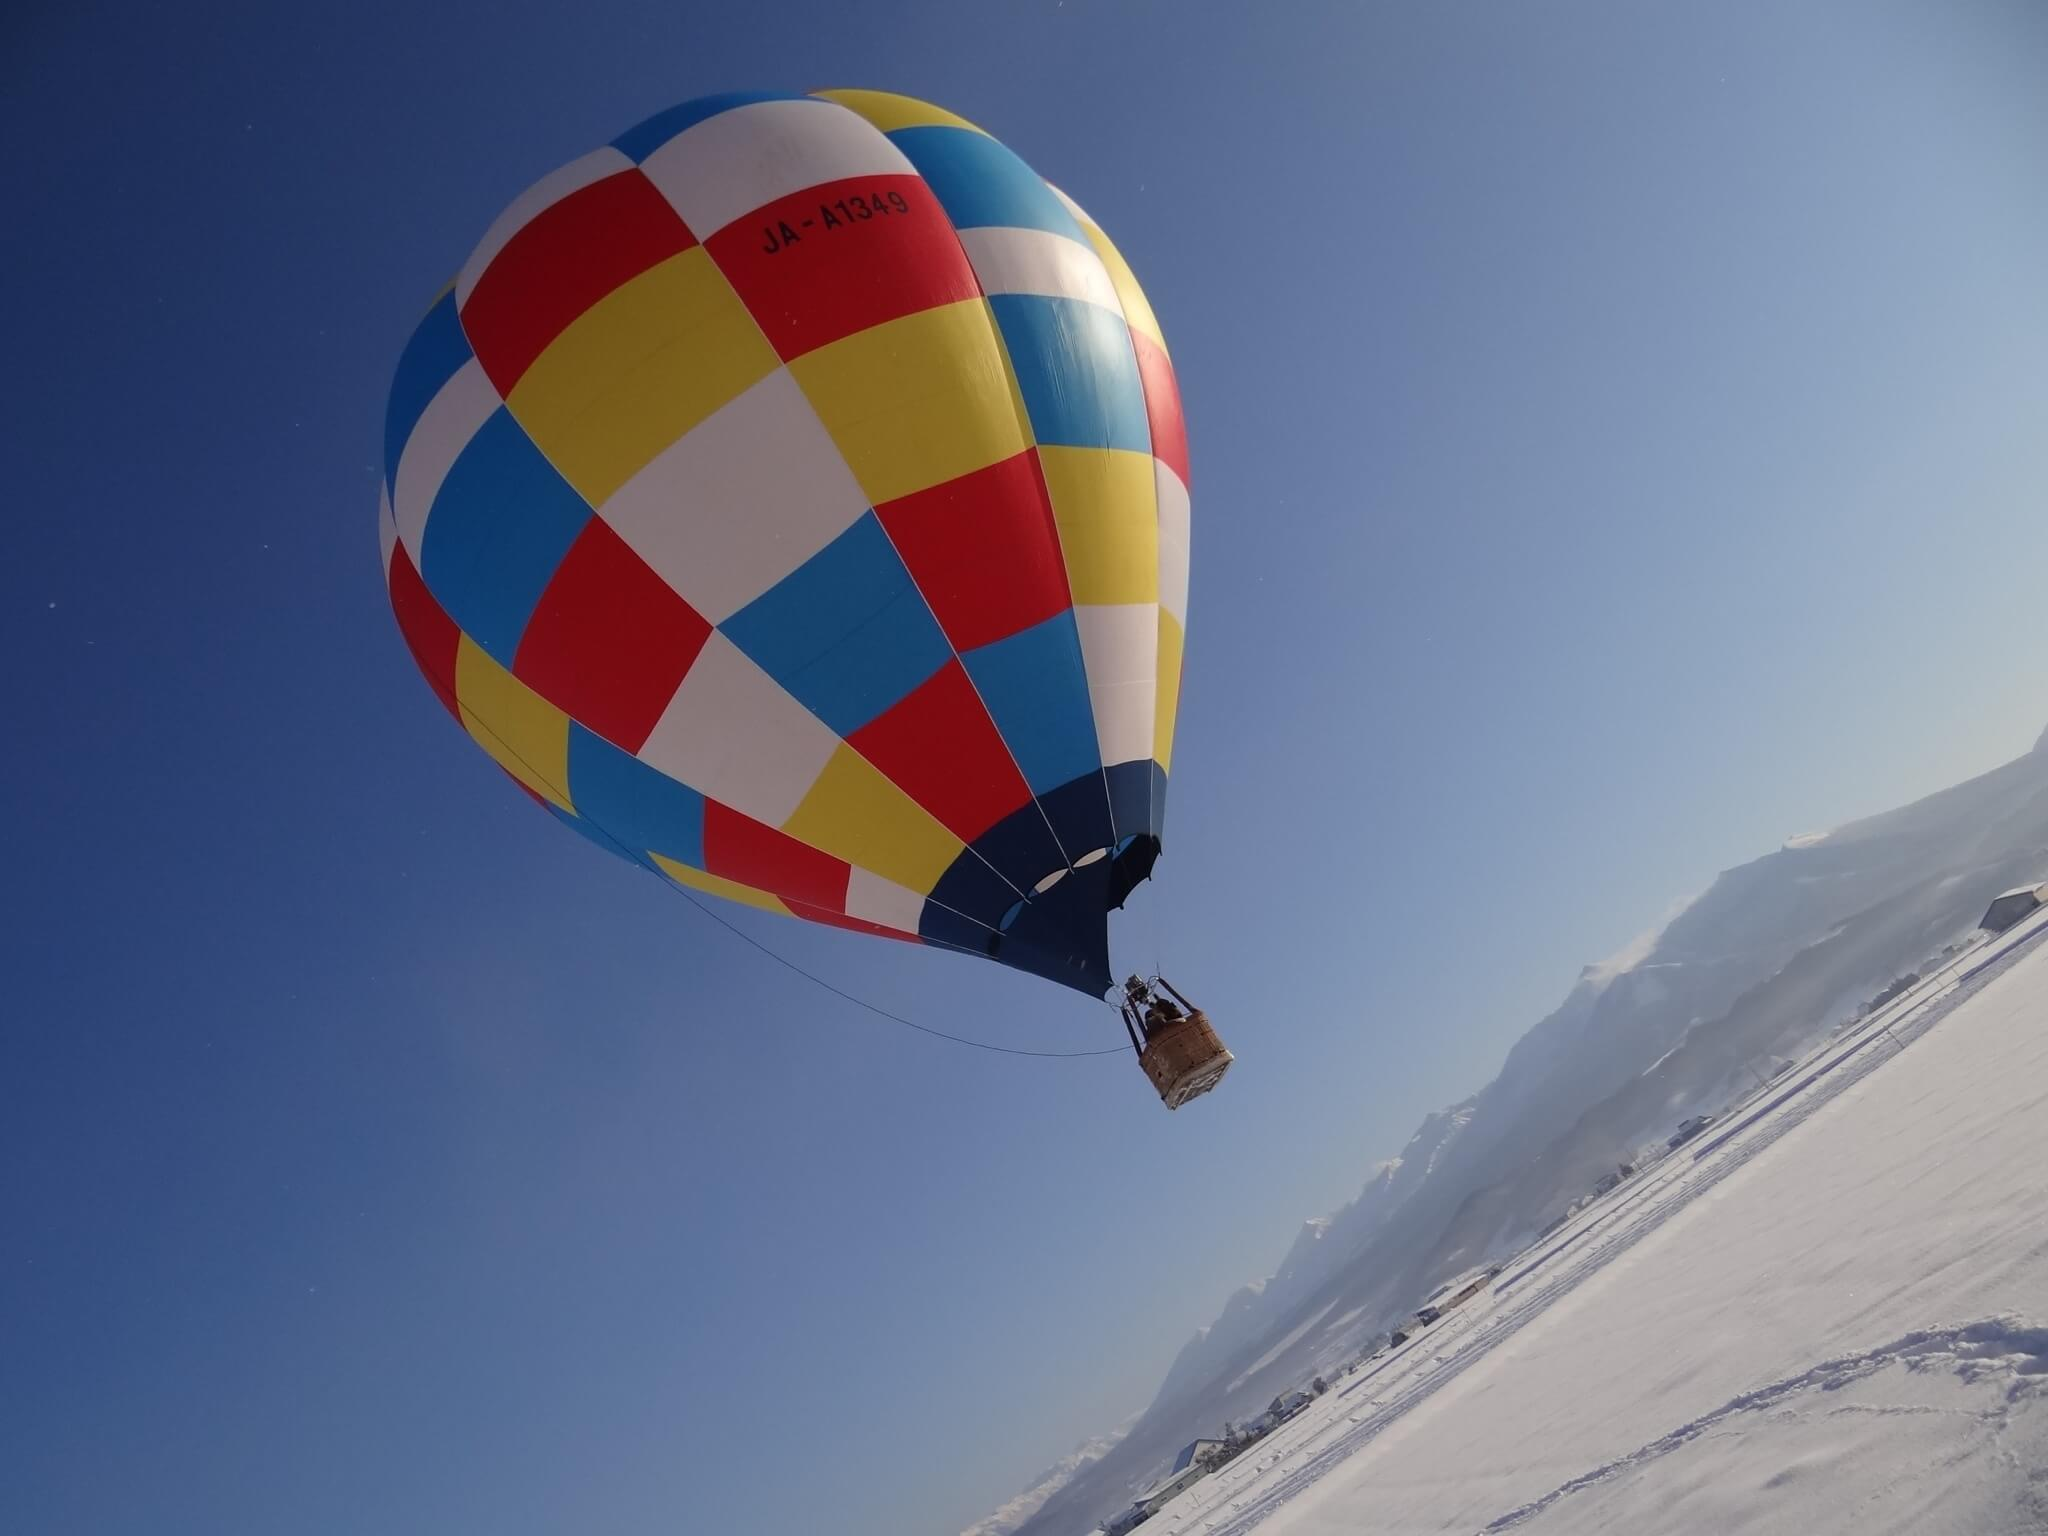 Enjoy Furano's Hot Air Balloon Rides in the Summer Heat and Winter Chill